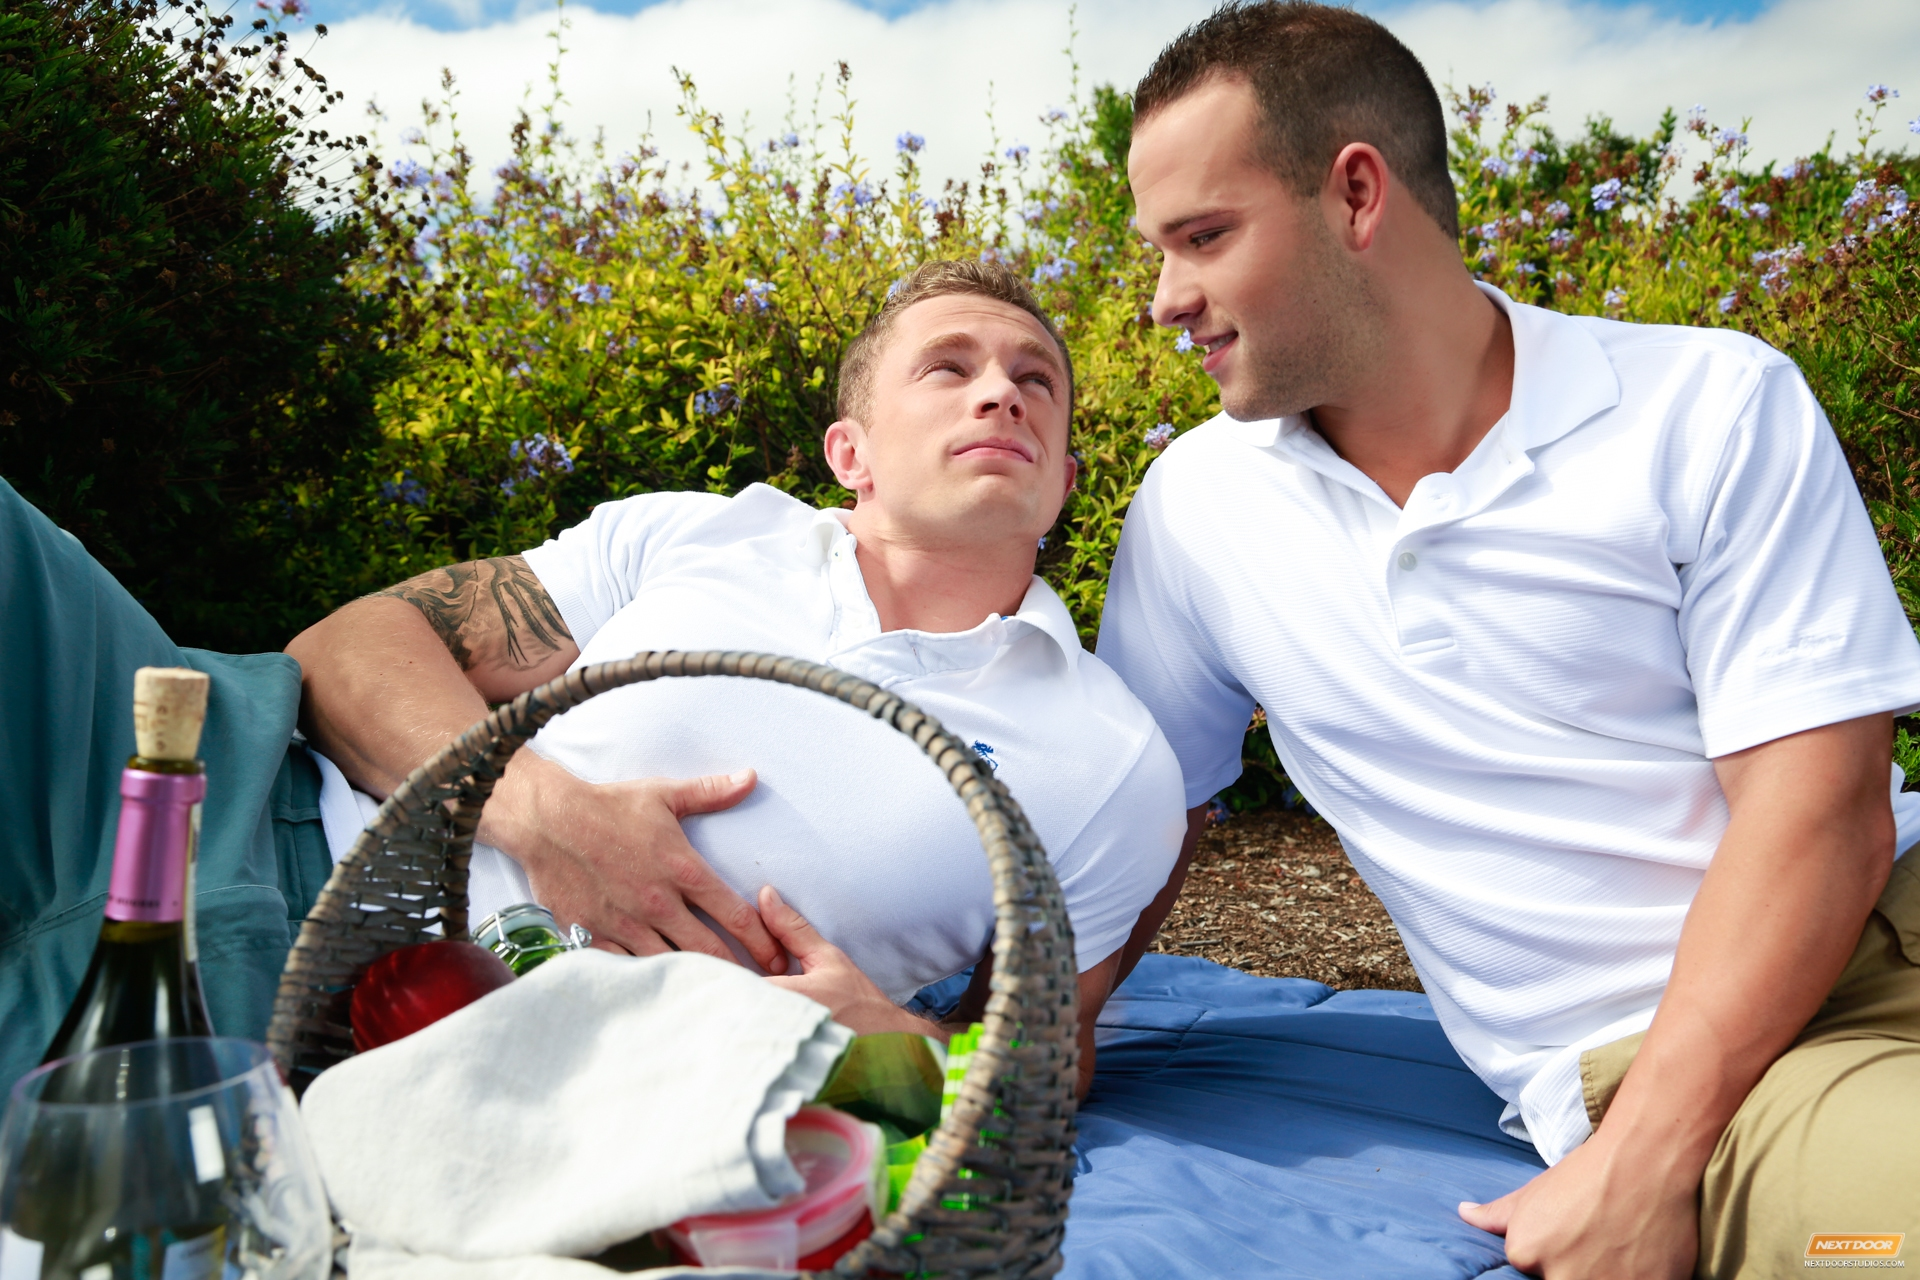 Markie More and Luke Adams flip-fuck outdoors for gay porn site Next Door Buddies.